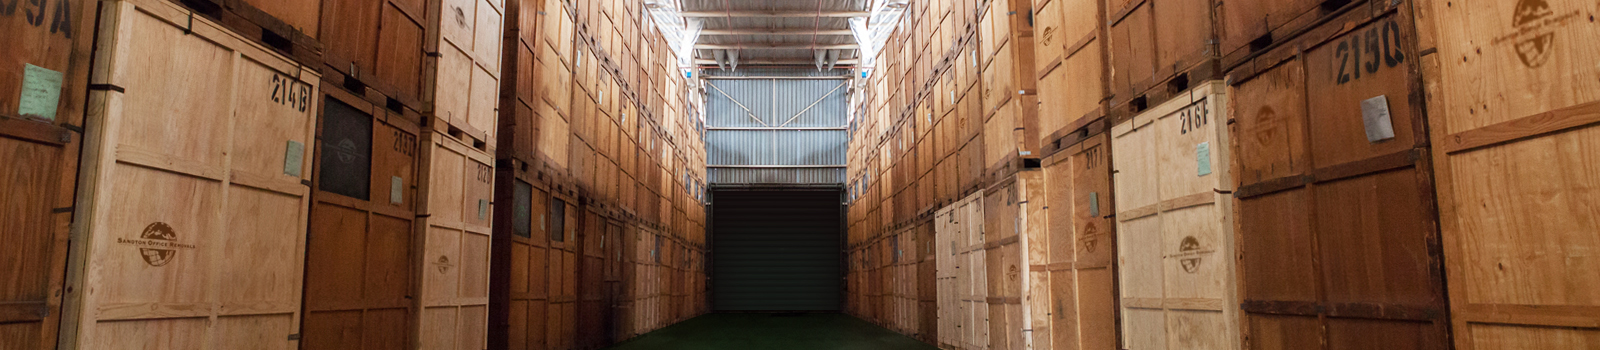 Boxes and crates stored in a warehouse.